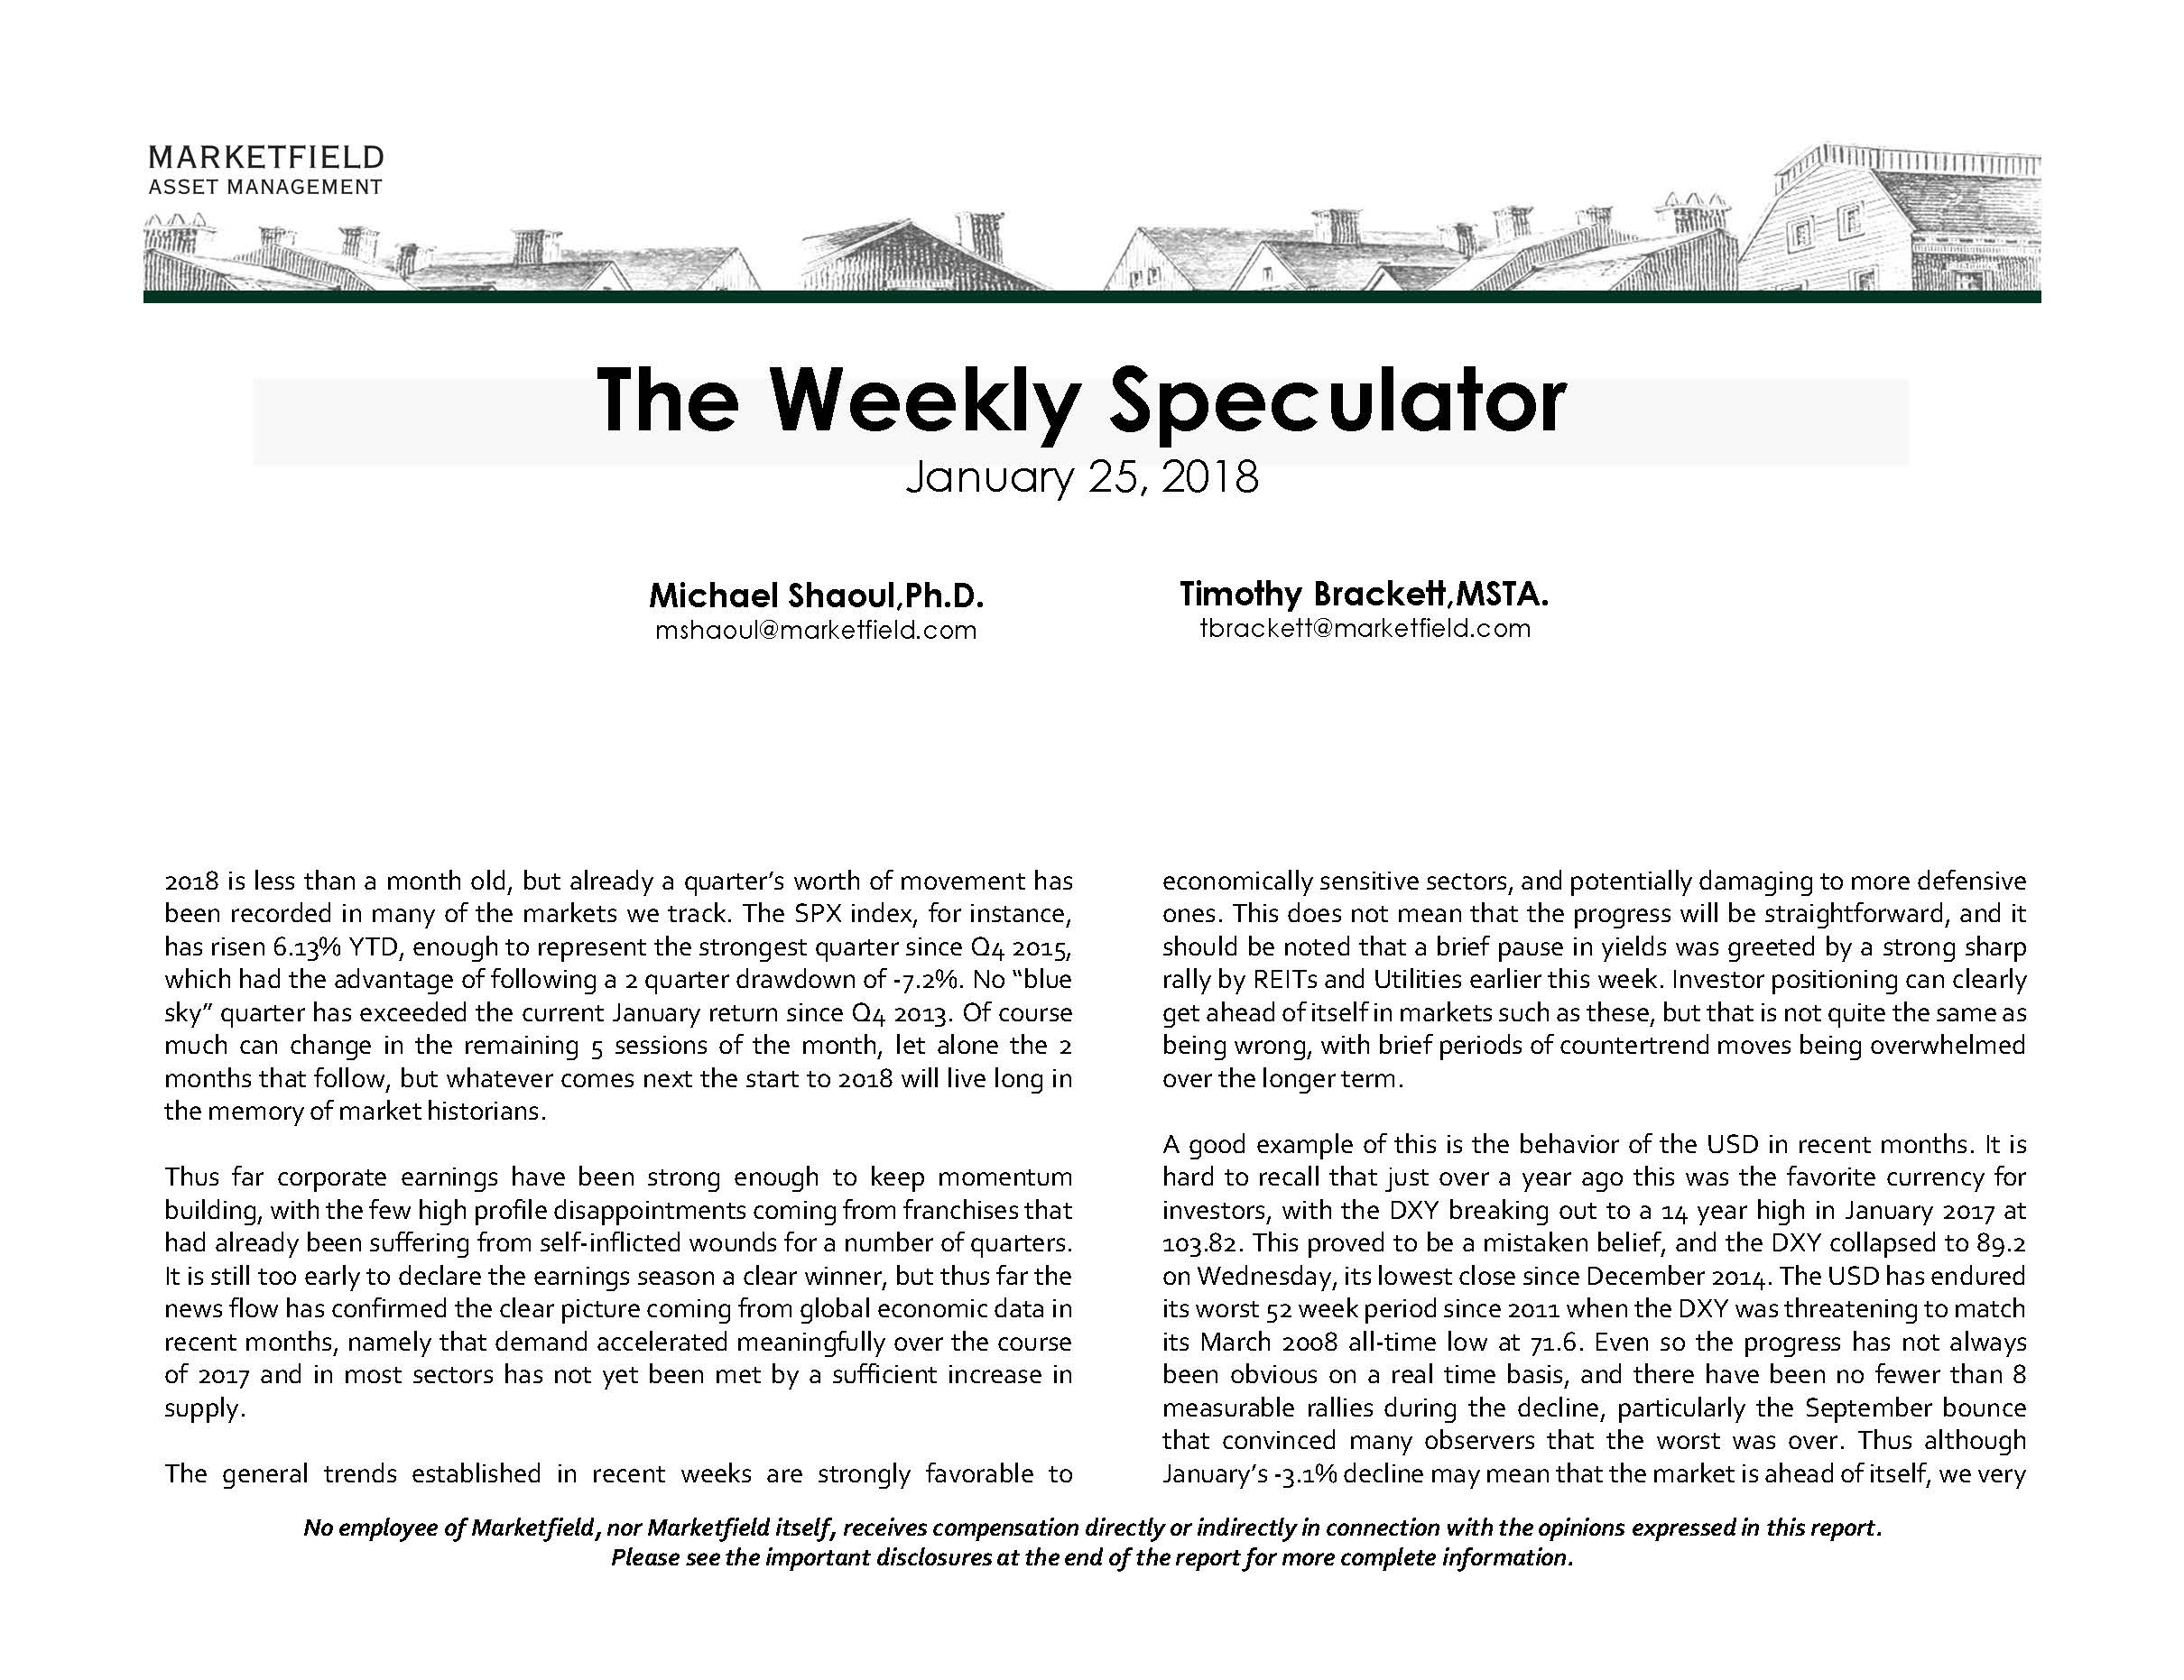 marketfield weekly speculator for 01-25-18_Page_01.jpg